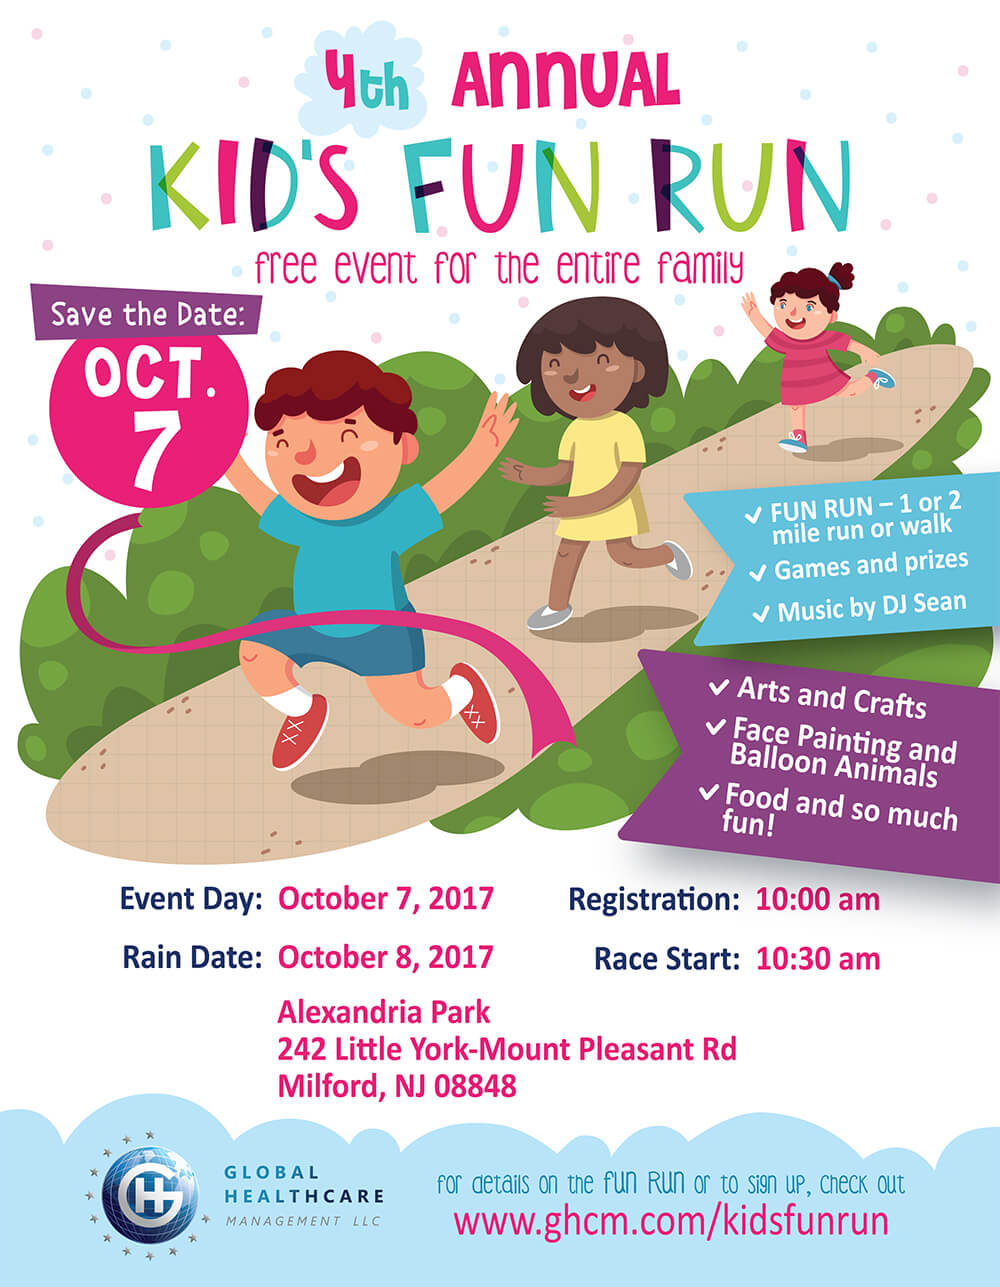 Kids FUN RUN - Free Event hosted by Global Healthcare Management